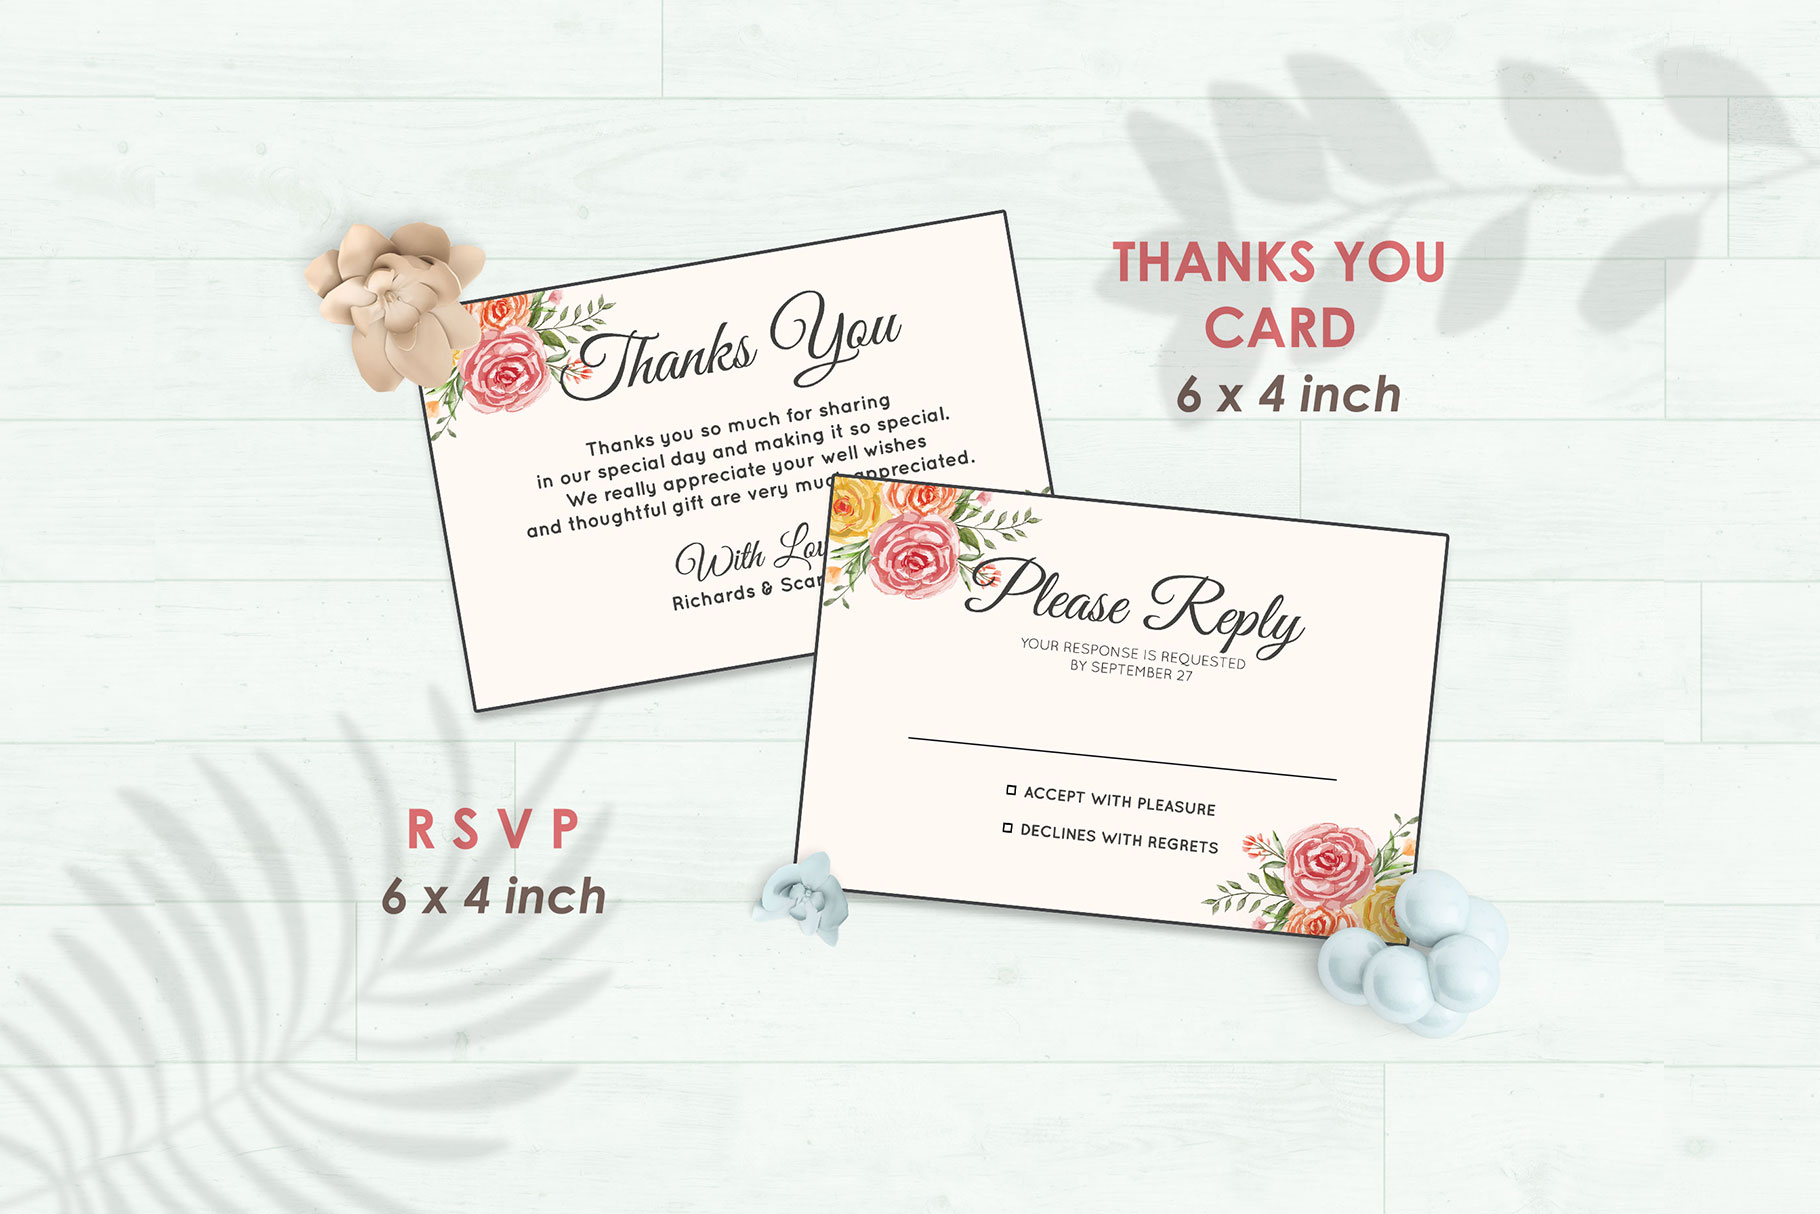 Wedding Invitation Set #3 Watercolor Floral Flower Style example image 4